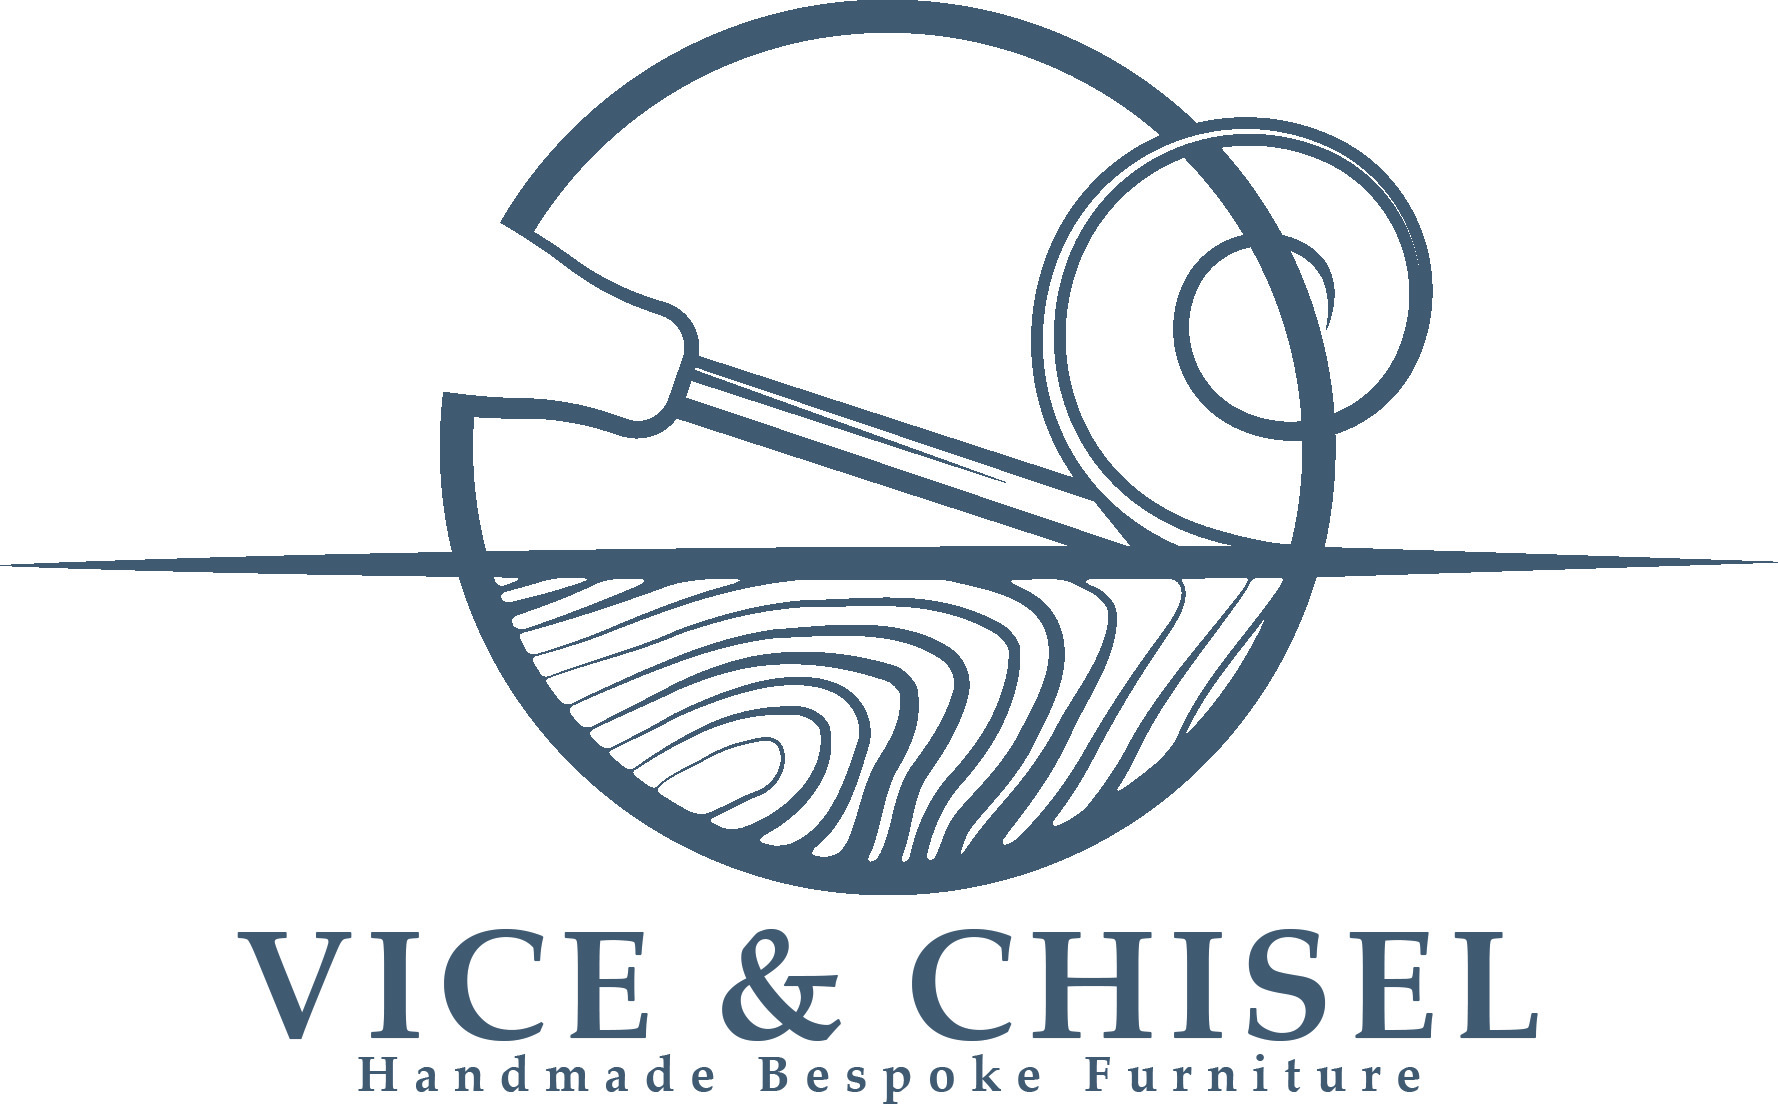 Vice and Chisel